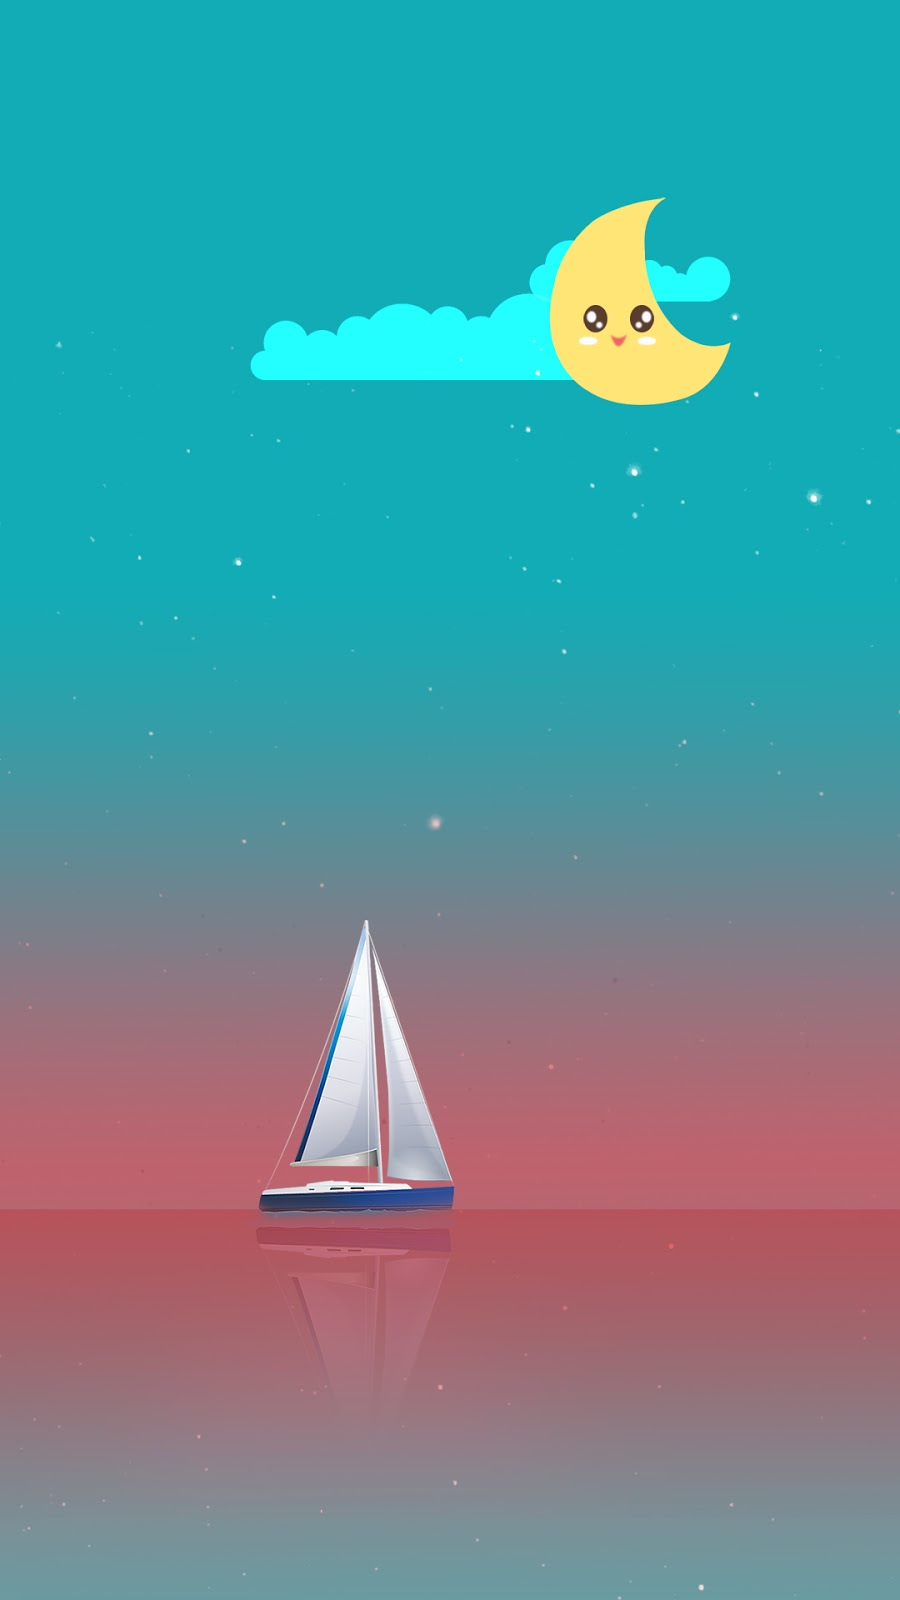 Blackberry Themes Boat Wallpaper Iphone 7